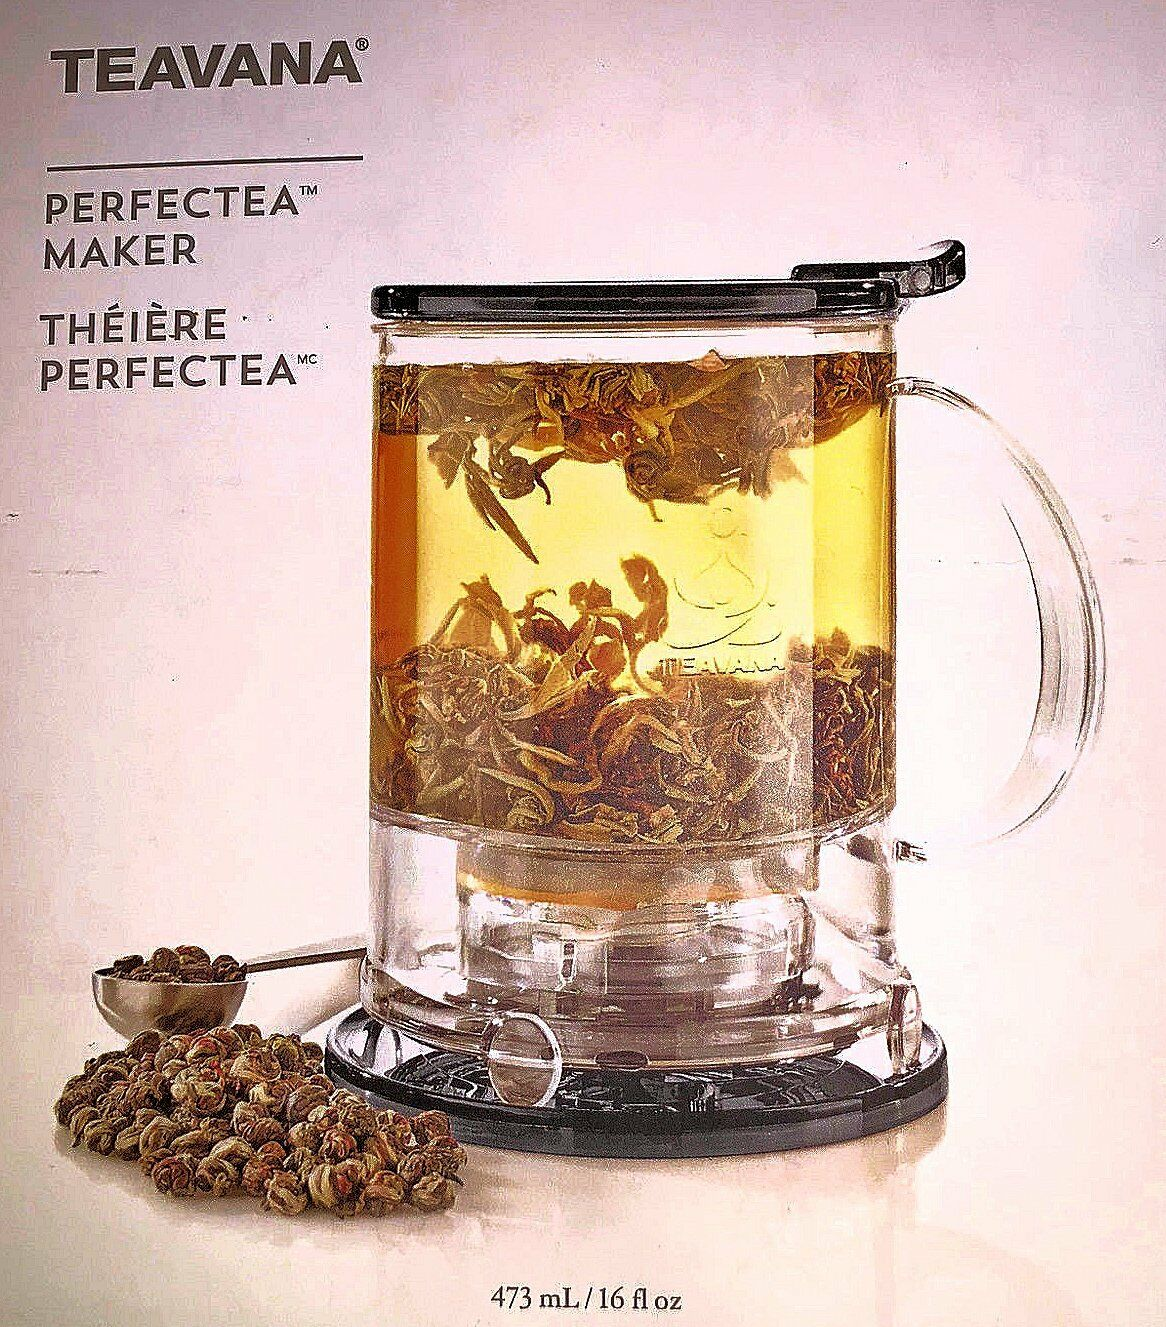 Black Starbucks / Teavana Perfectea Maker: 16oz